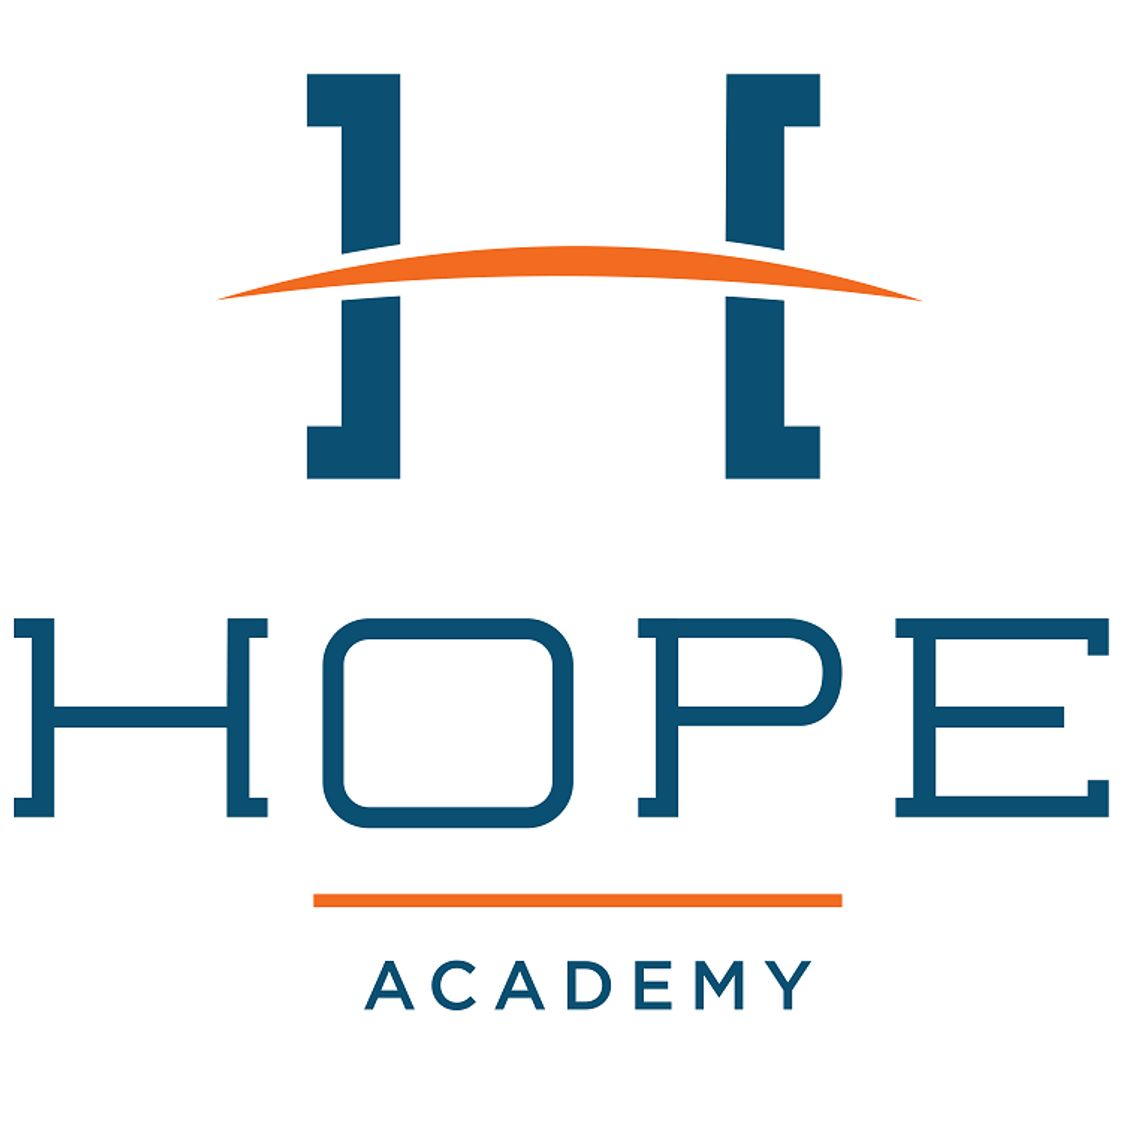 HOPE Academy Photo - HOPE Academy is an AdvancEd accredited Kindergarten through 12th grade University Model School serving the Concord and Greater Charlotte North Carolina areas. In this unique hybrid school parents are supported with professional instruction and curriculum for both in-class and at-home learning.